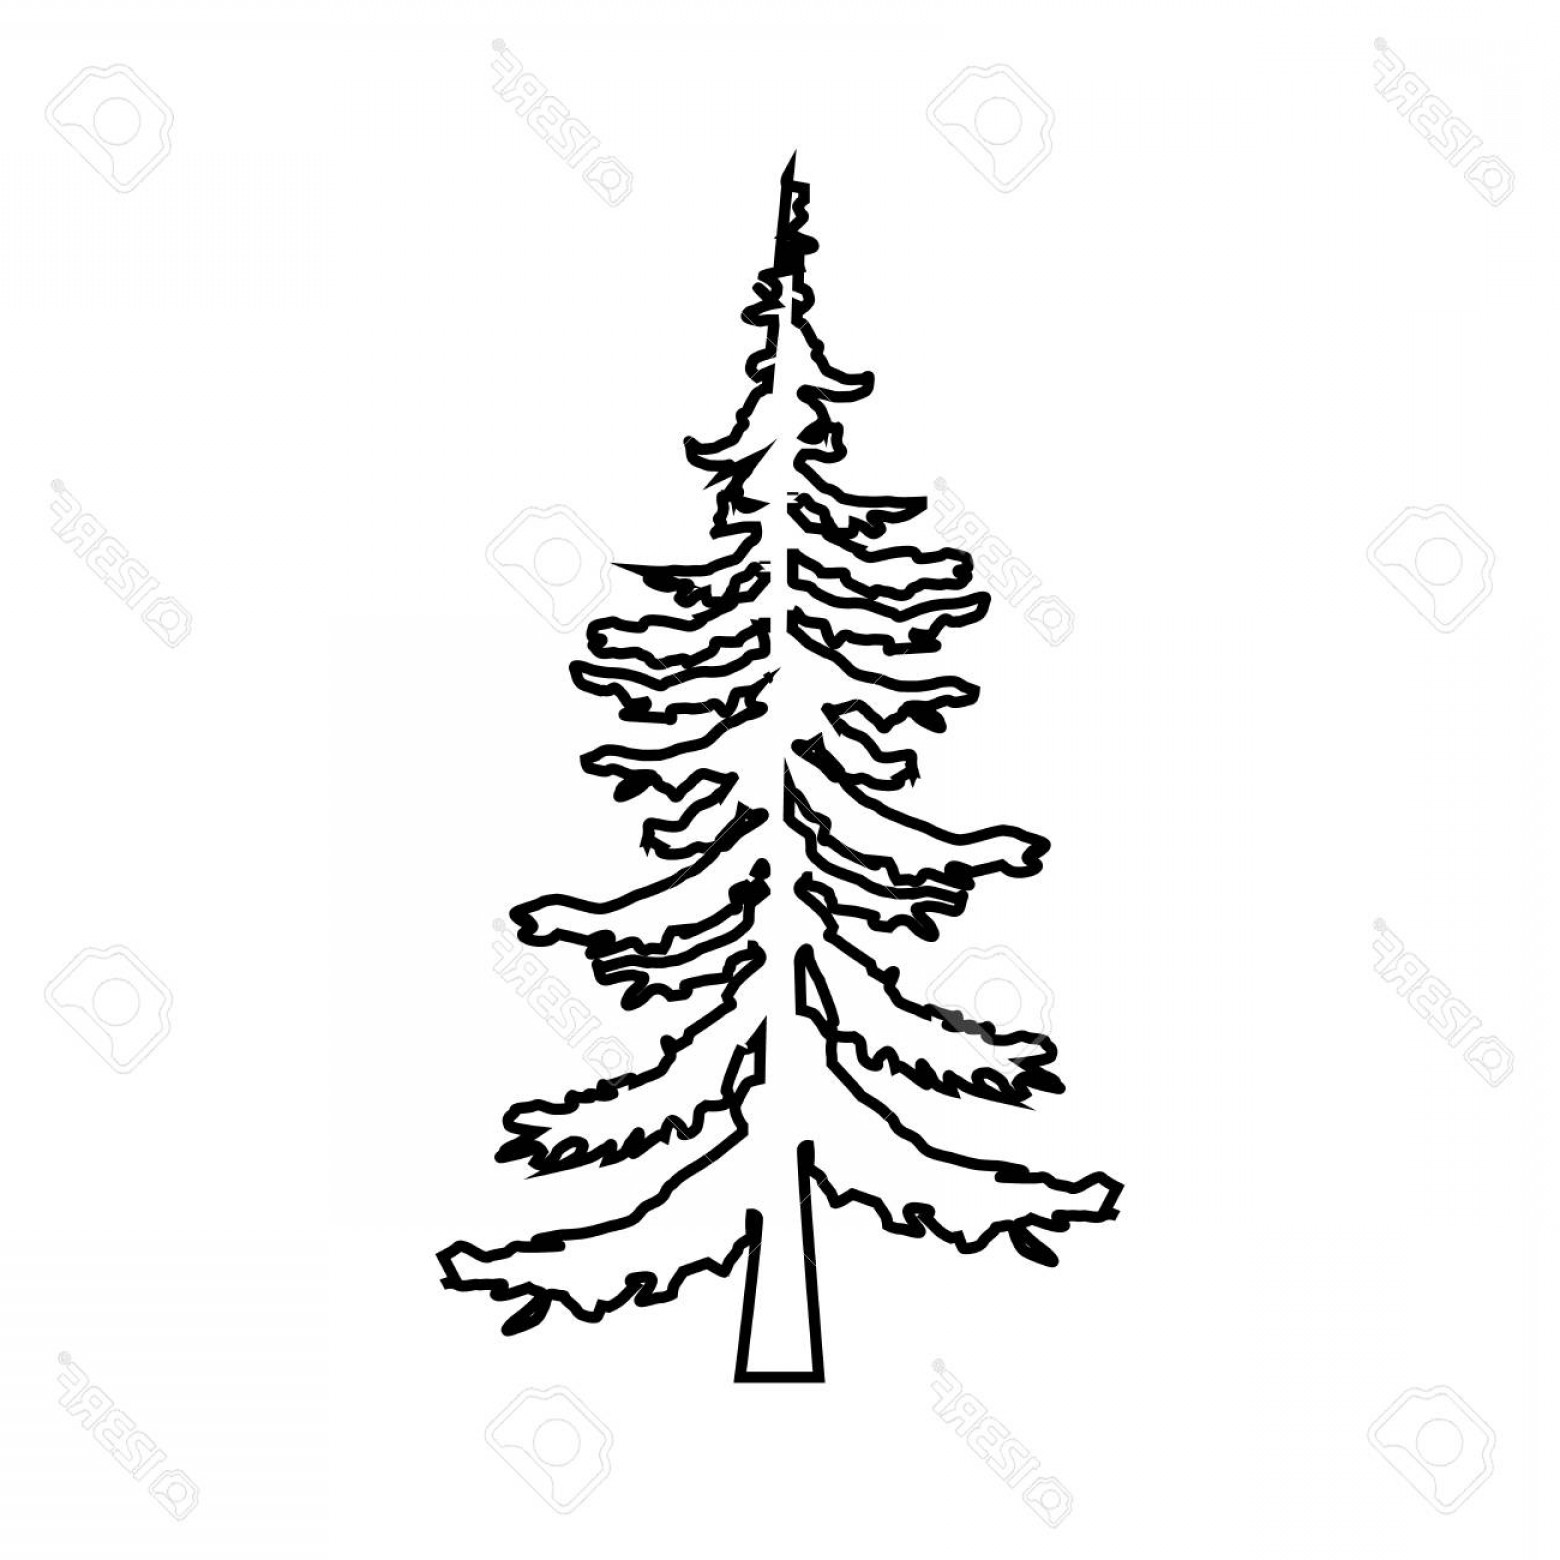 1560x1560 Evergreen Tree Outline Vector Soidergi